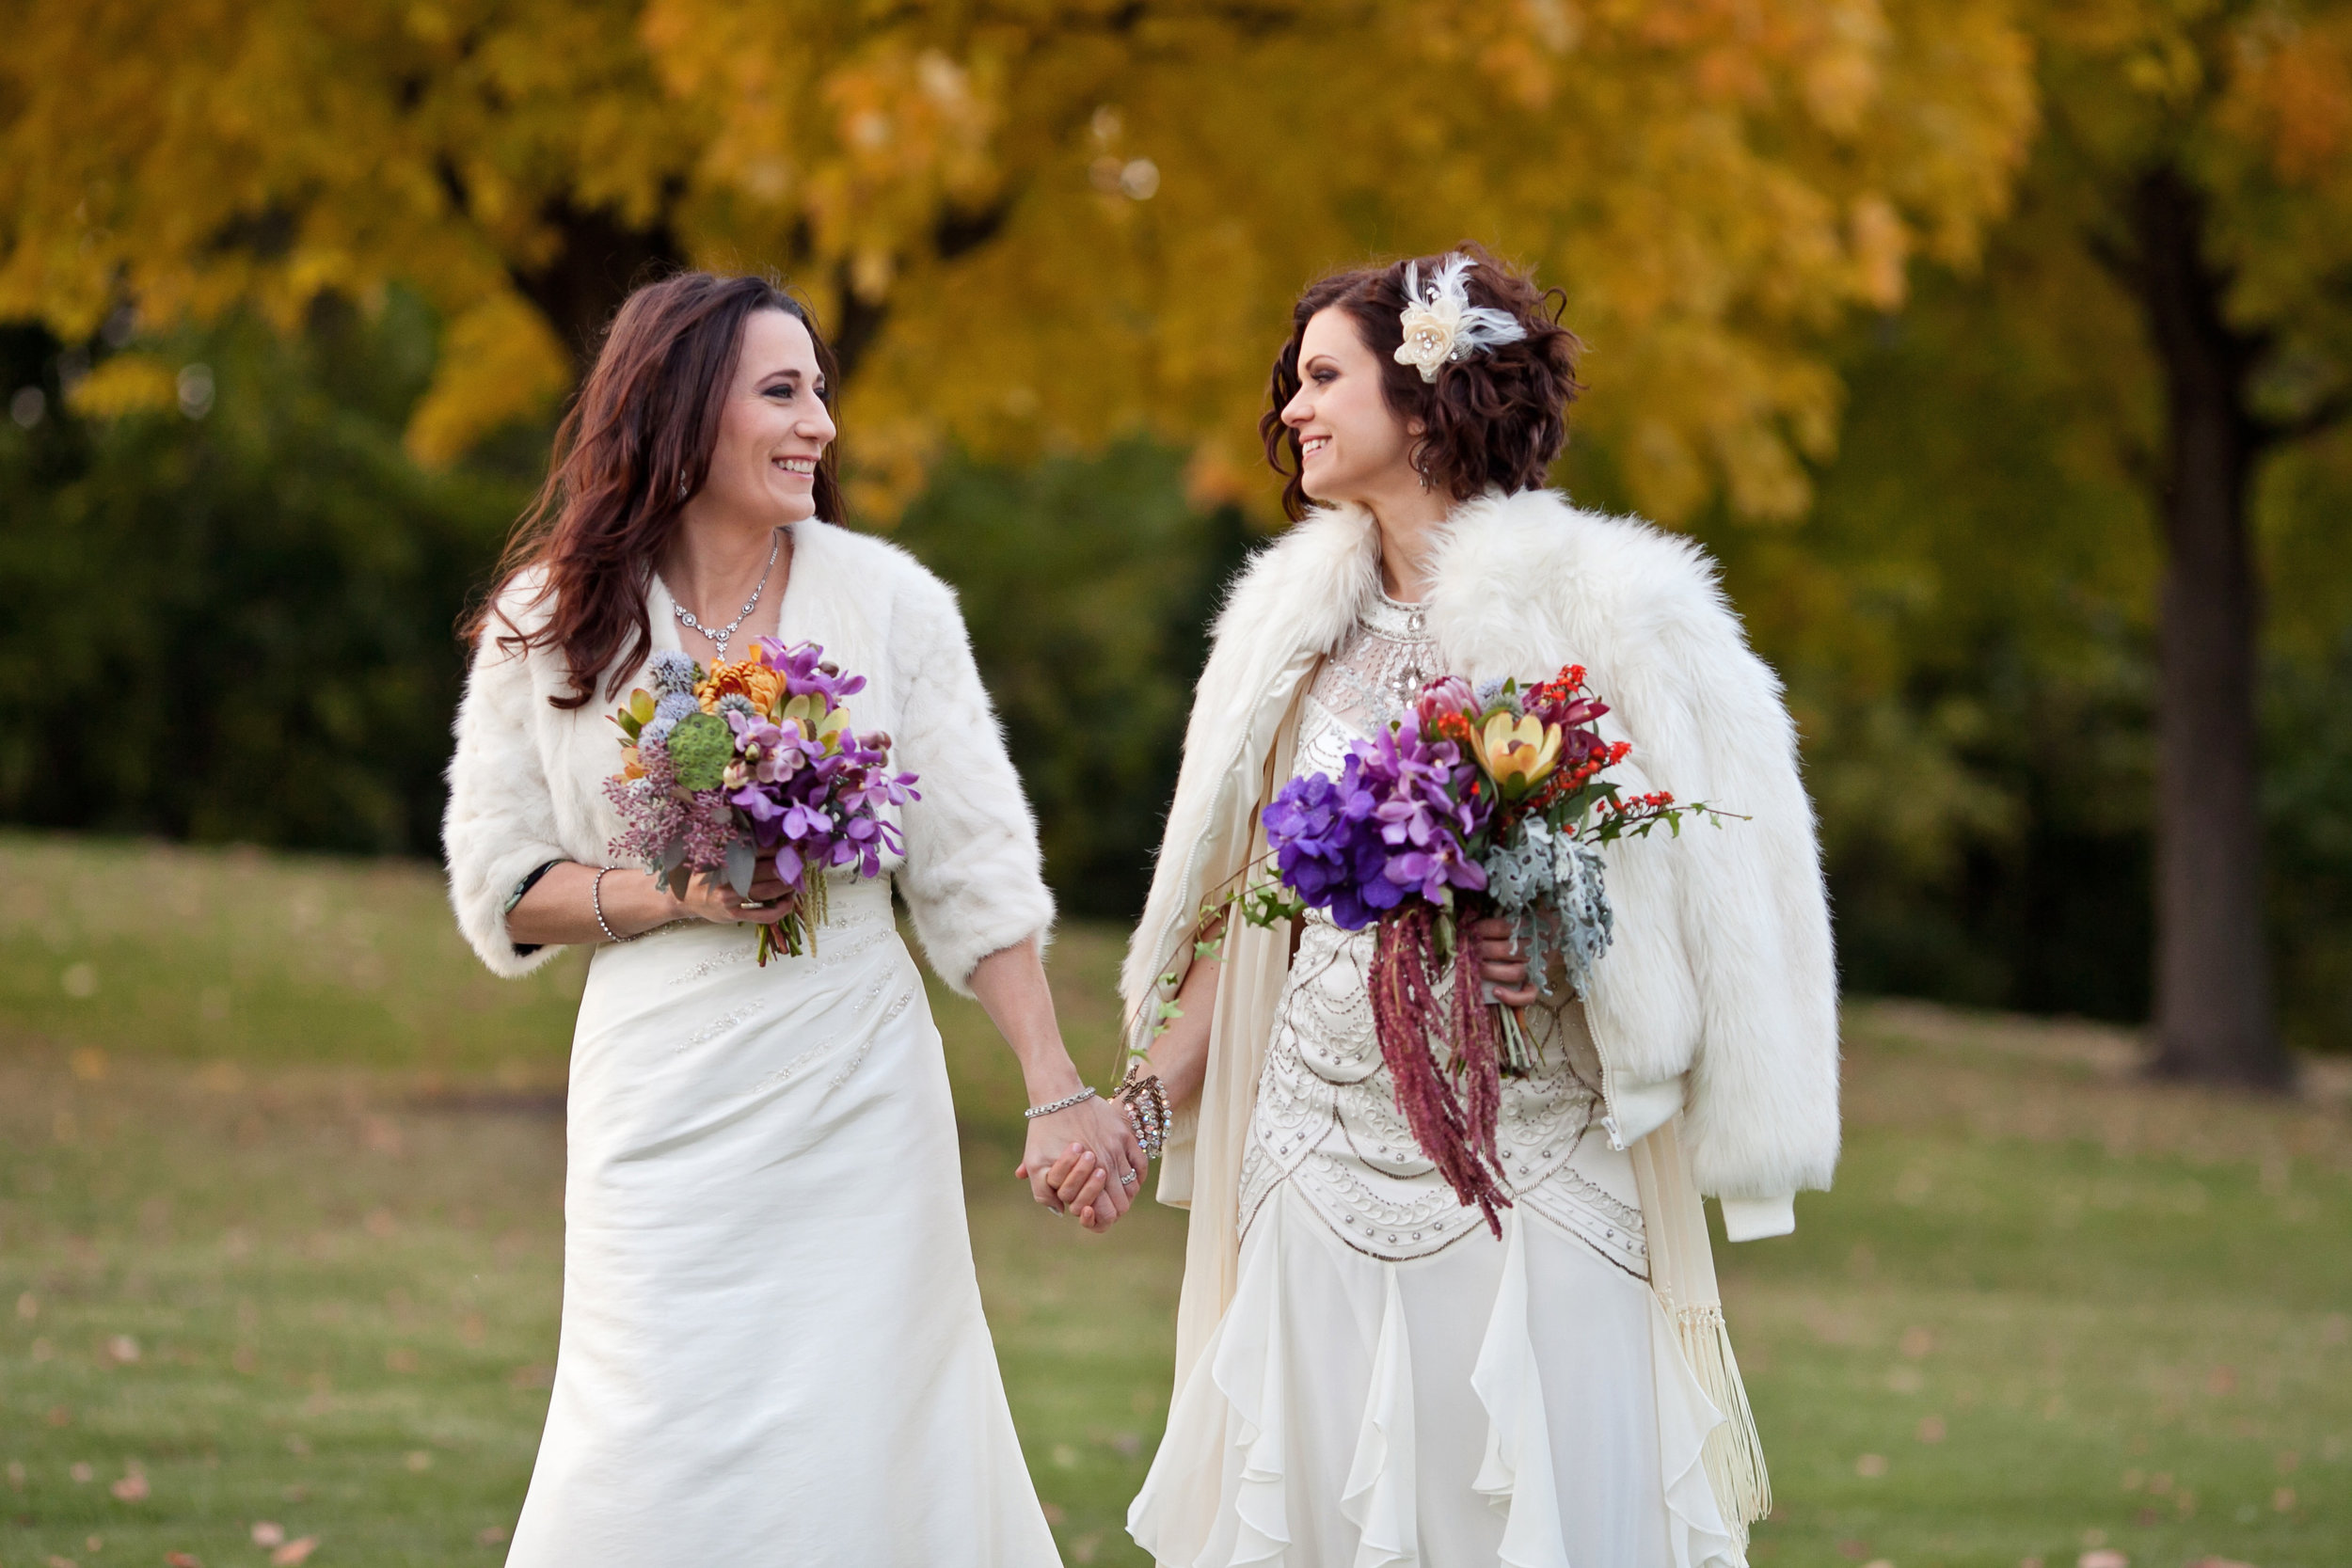 39 two brides two brides poses candid wedding shots brides with fur coats colorful bouquets spring bouquets Life Design Events.jpg